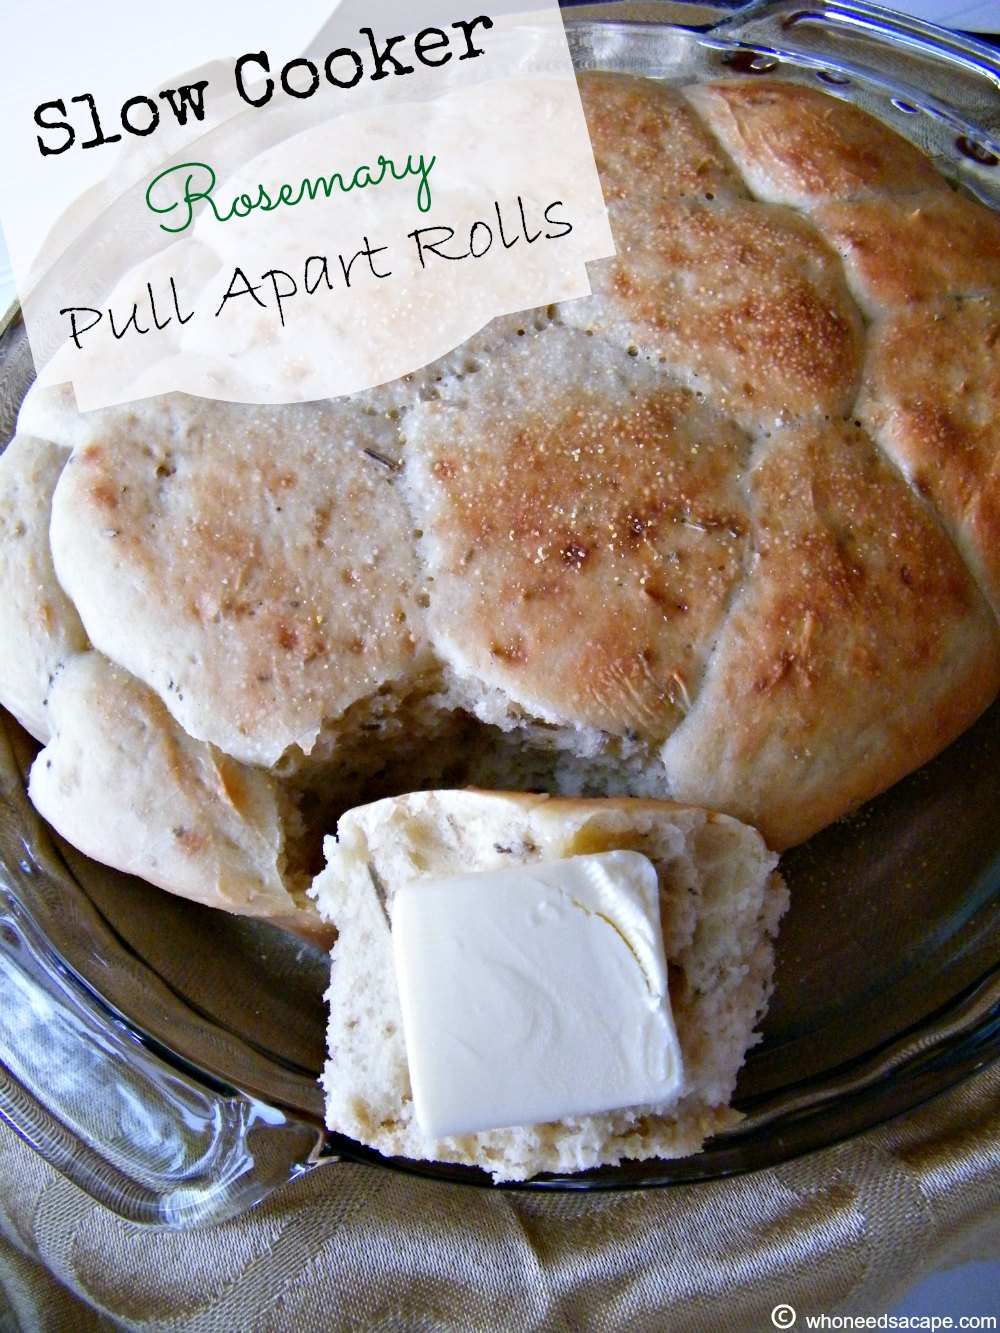 Make rolls in your slow cooker? Yes you can! Try these delicious Slow Cooker Rosemary Pull Apart Rolls with a bowl of soup or stew. Wonderfully simple!